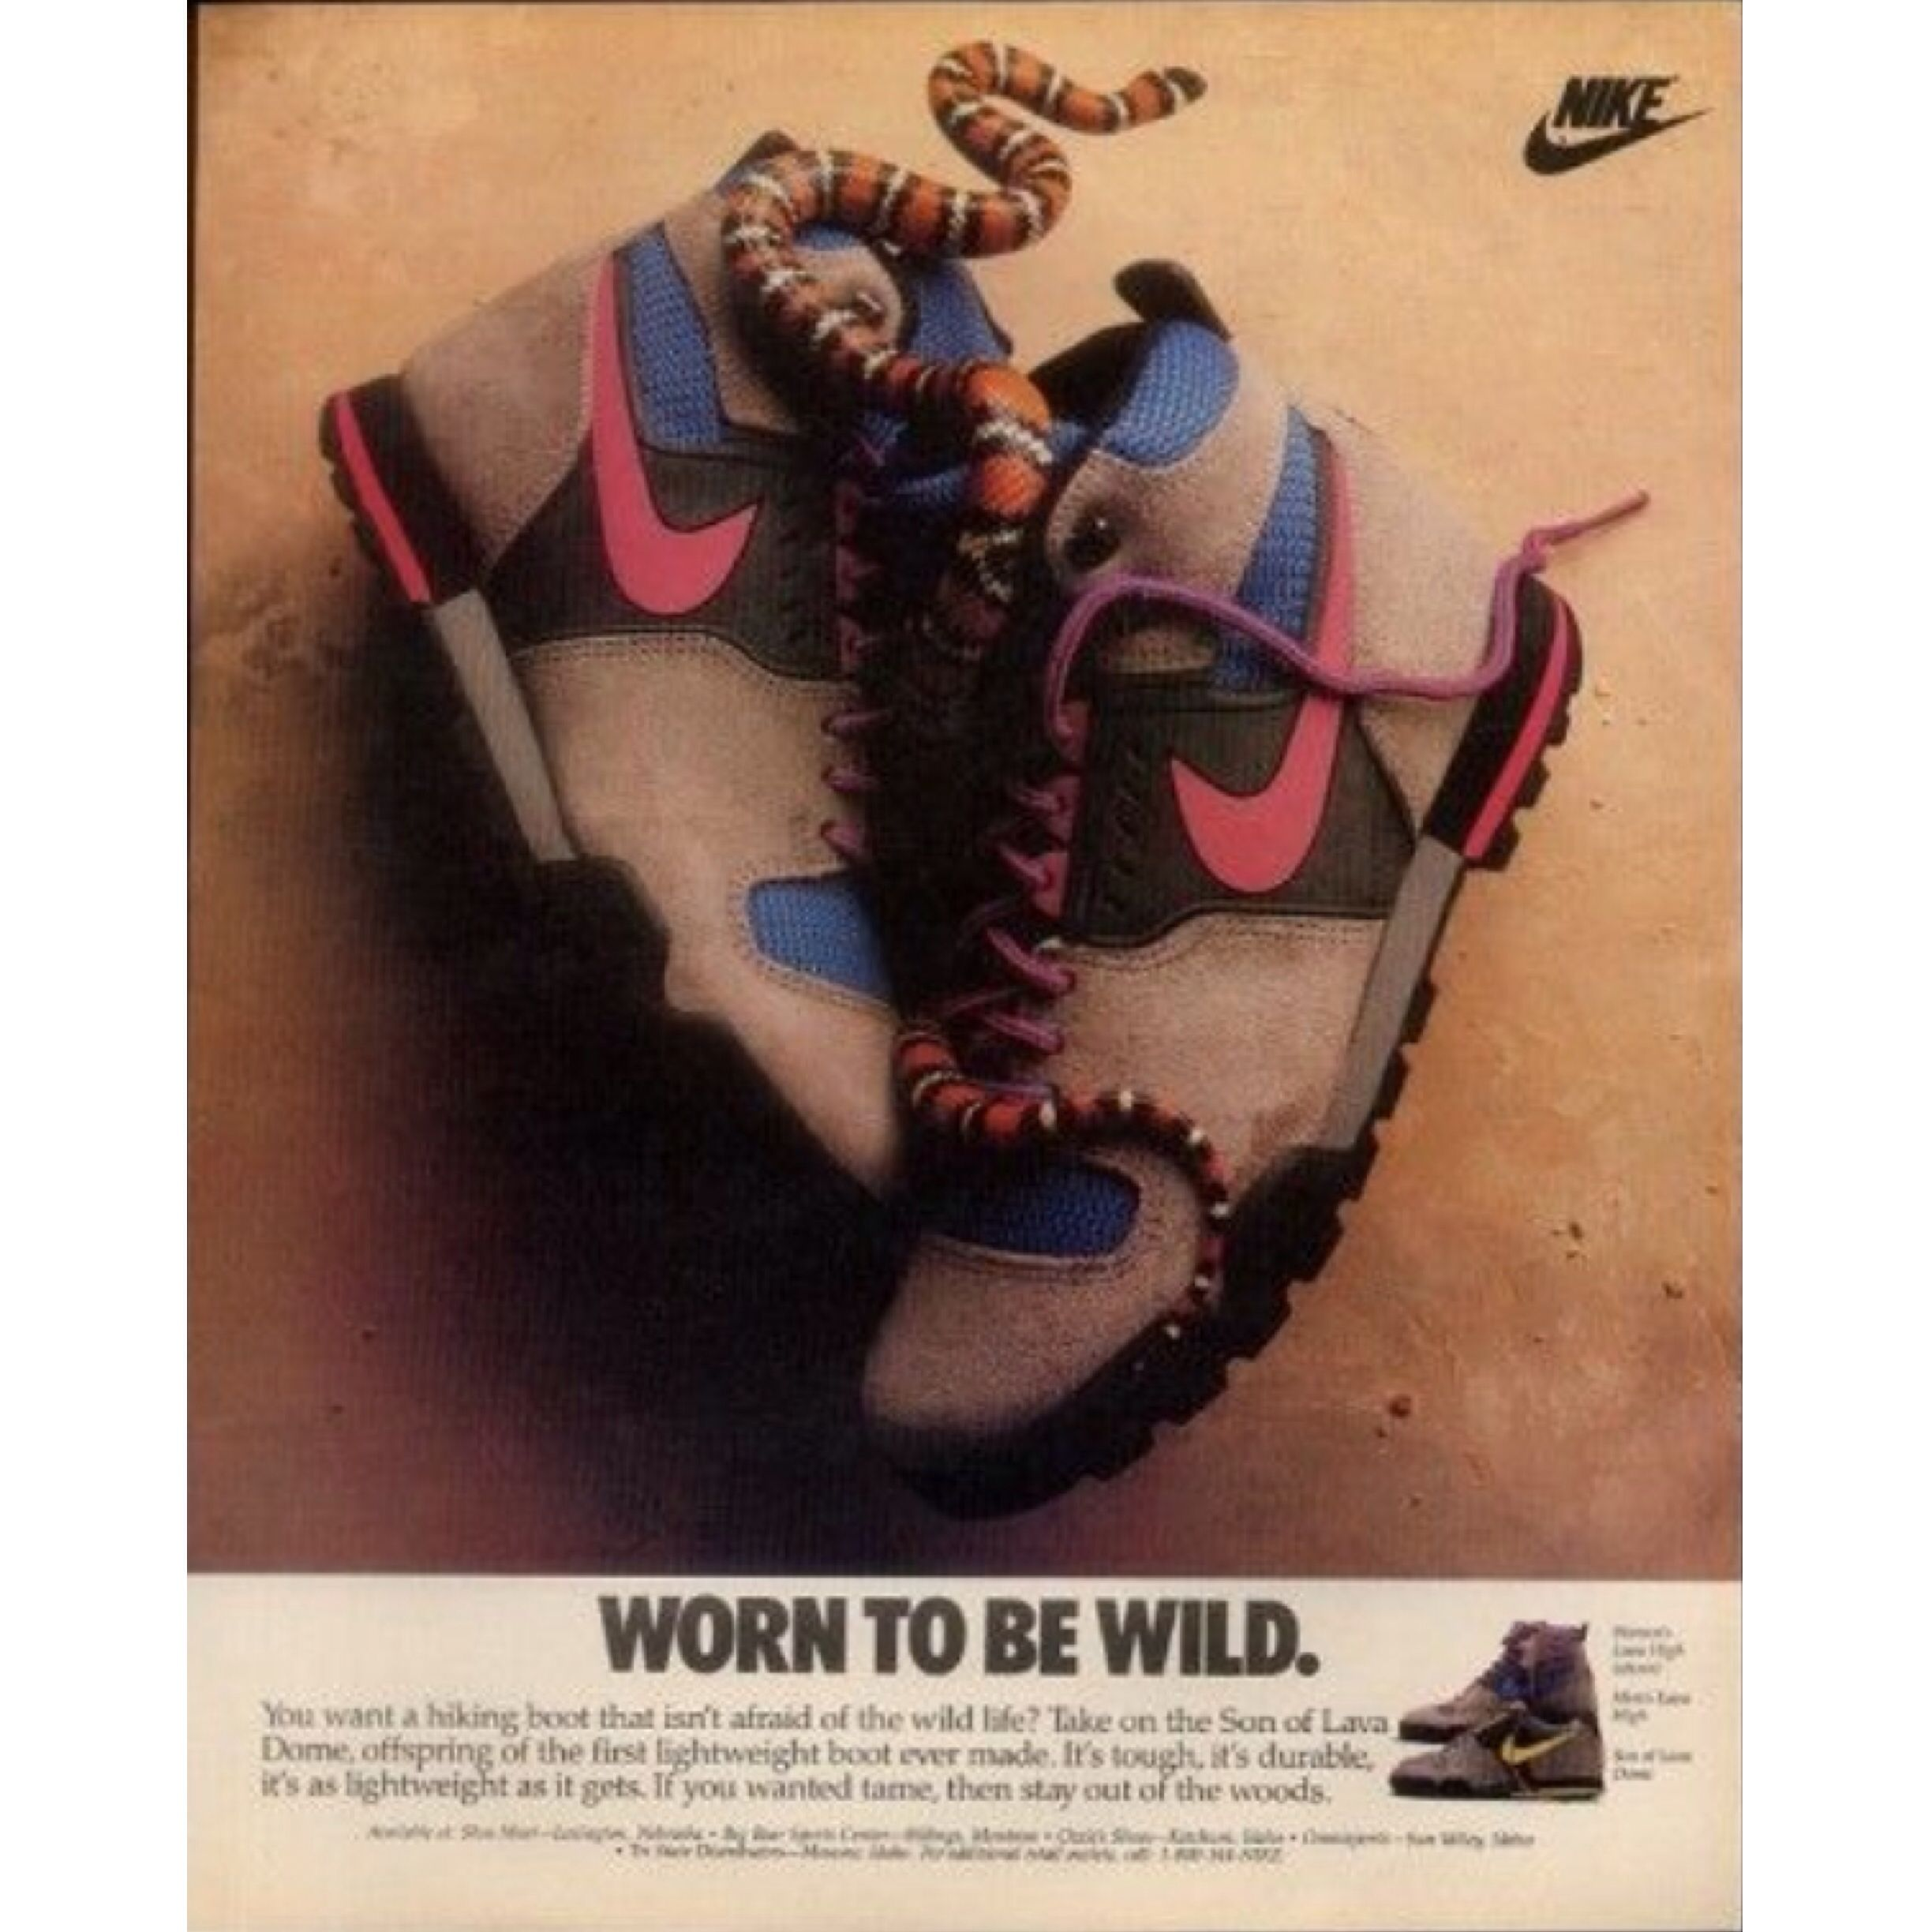 1988 red & black snake photo Nike Lava hiking shoes Son of Lava Dome print  ad